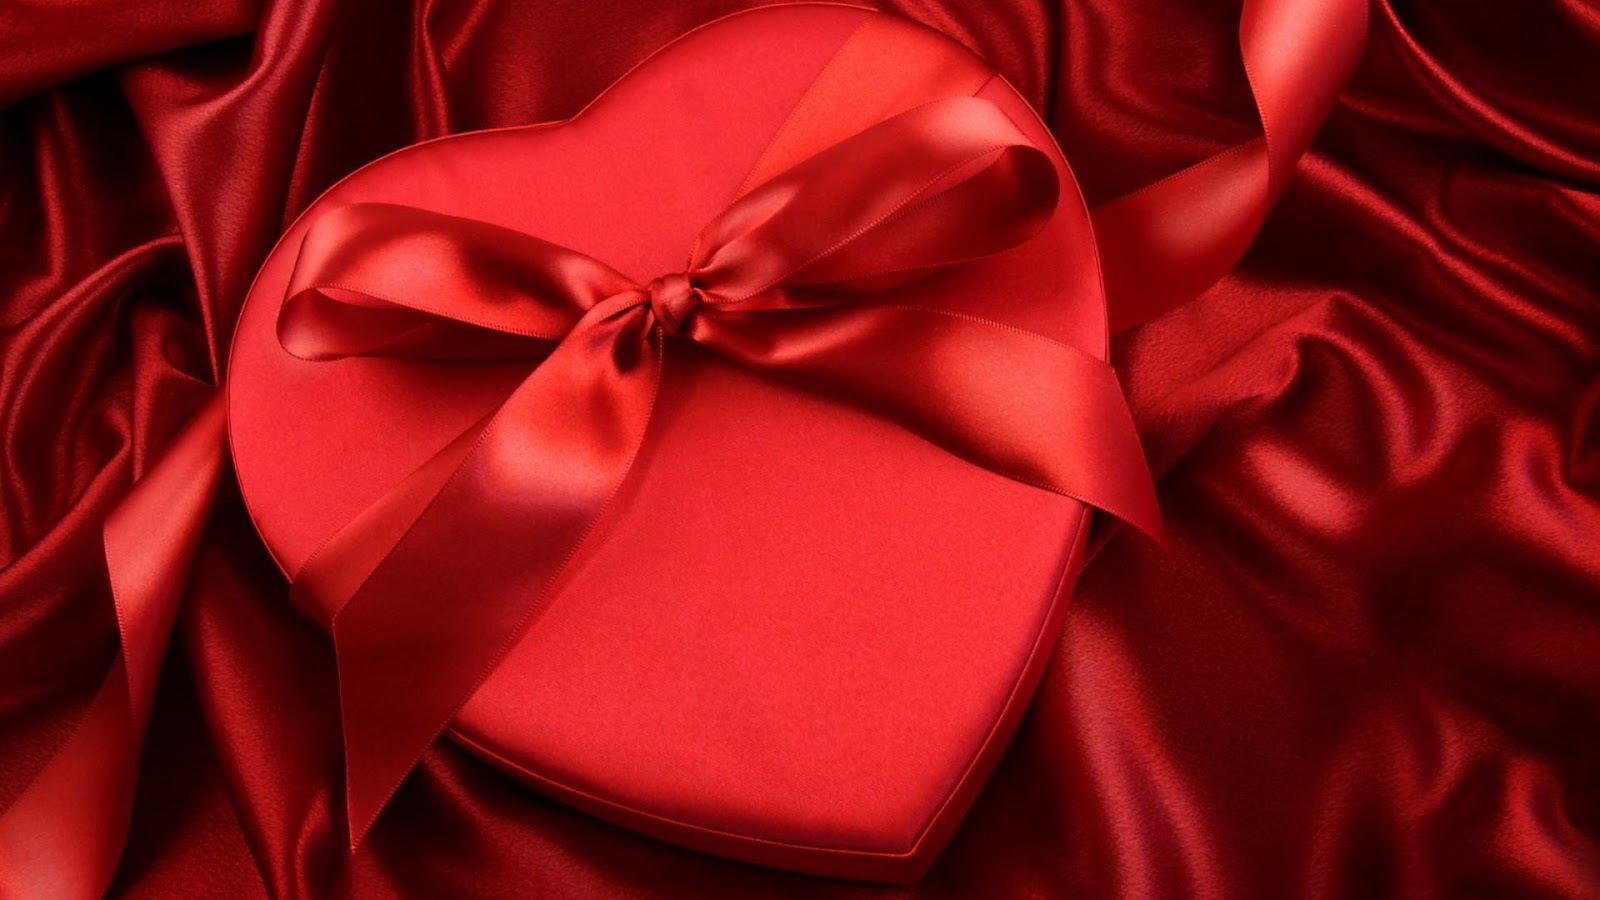 All you need are some naughty gifts ideas wrap up nicely  There are many  gifts  catering to one s  inside the bedroom  celebrations. Valentine Gifts  Naughty Gift Ideas For Valentine